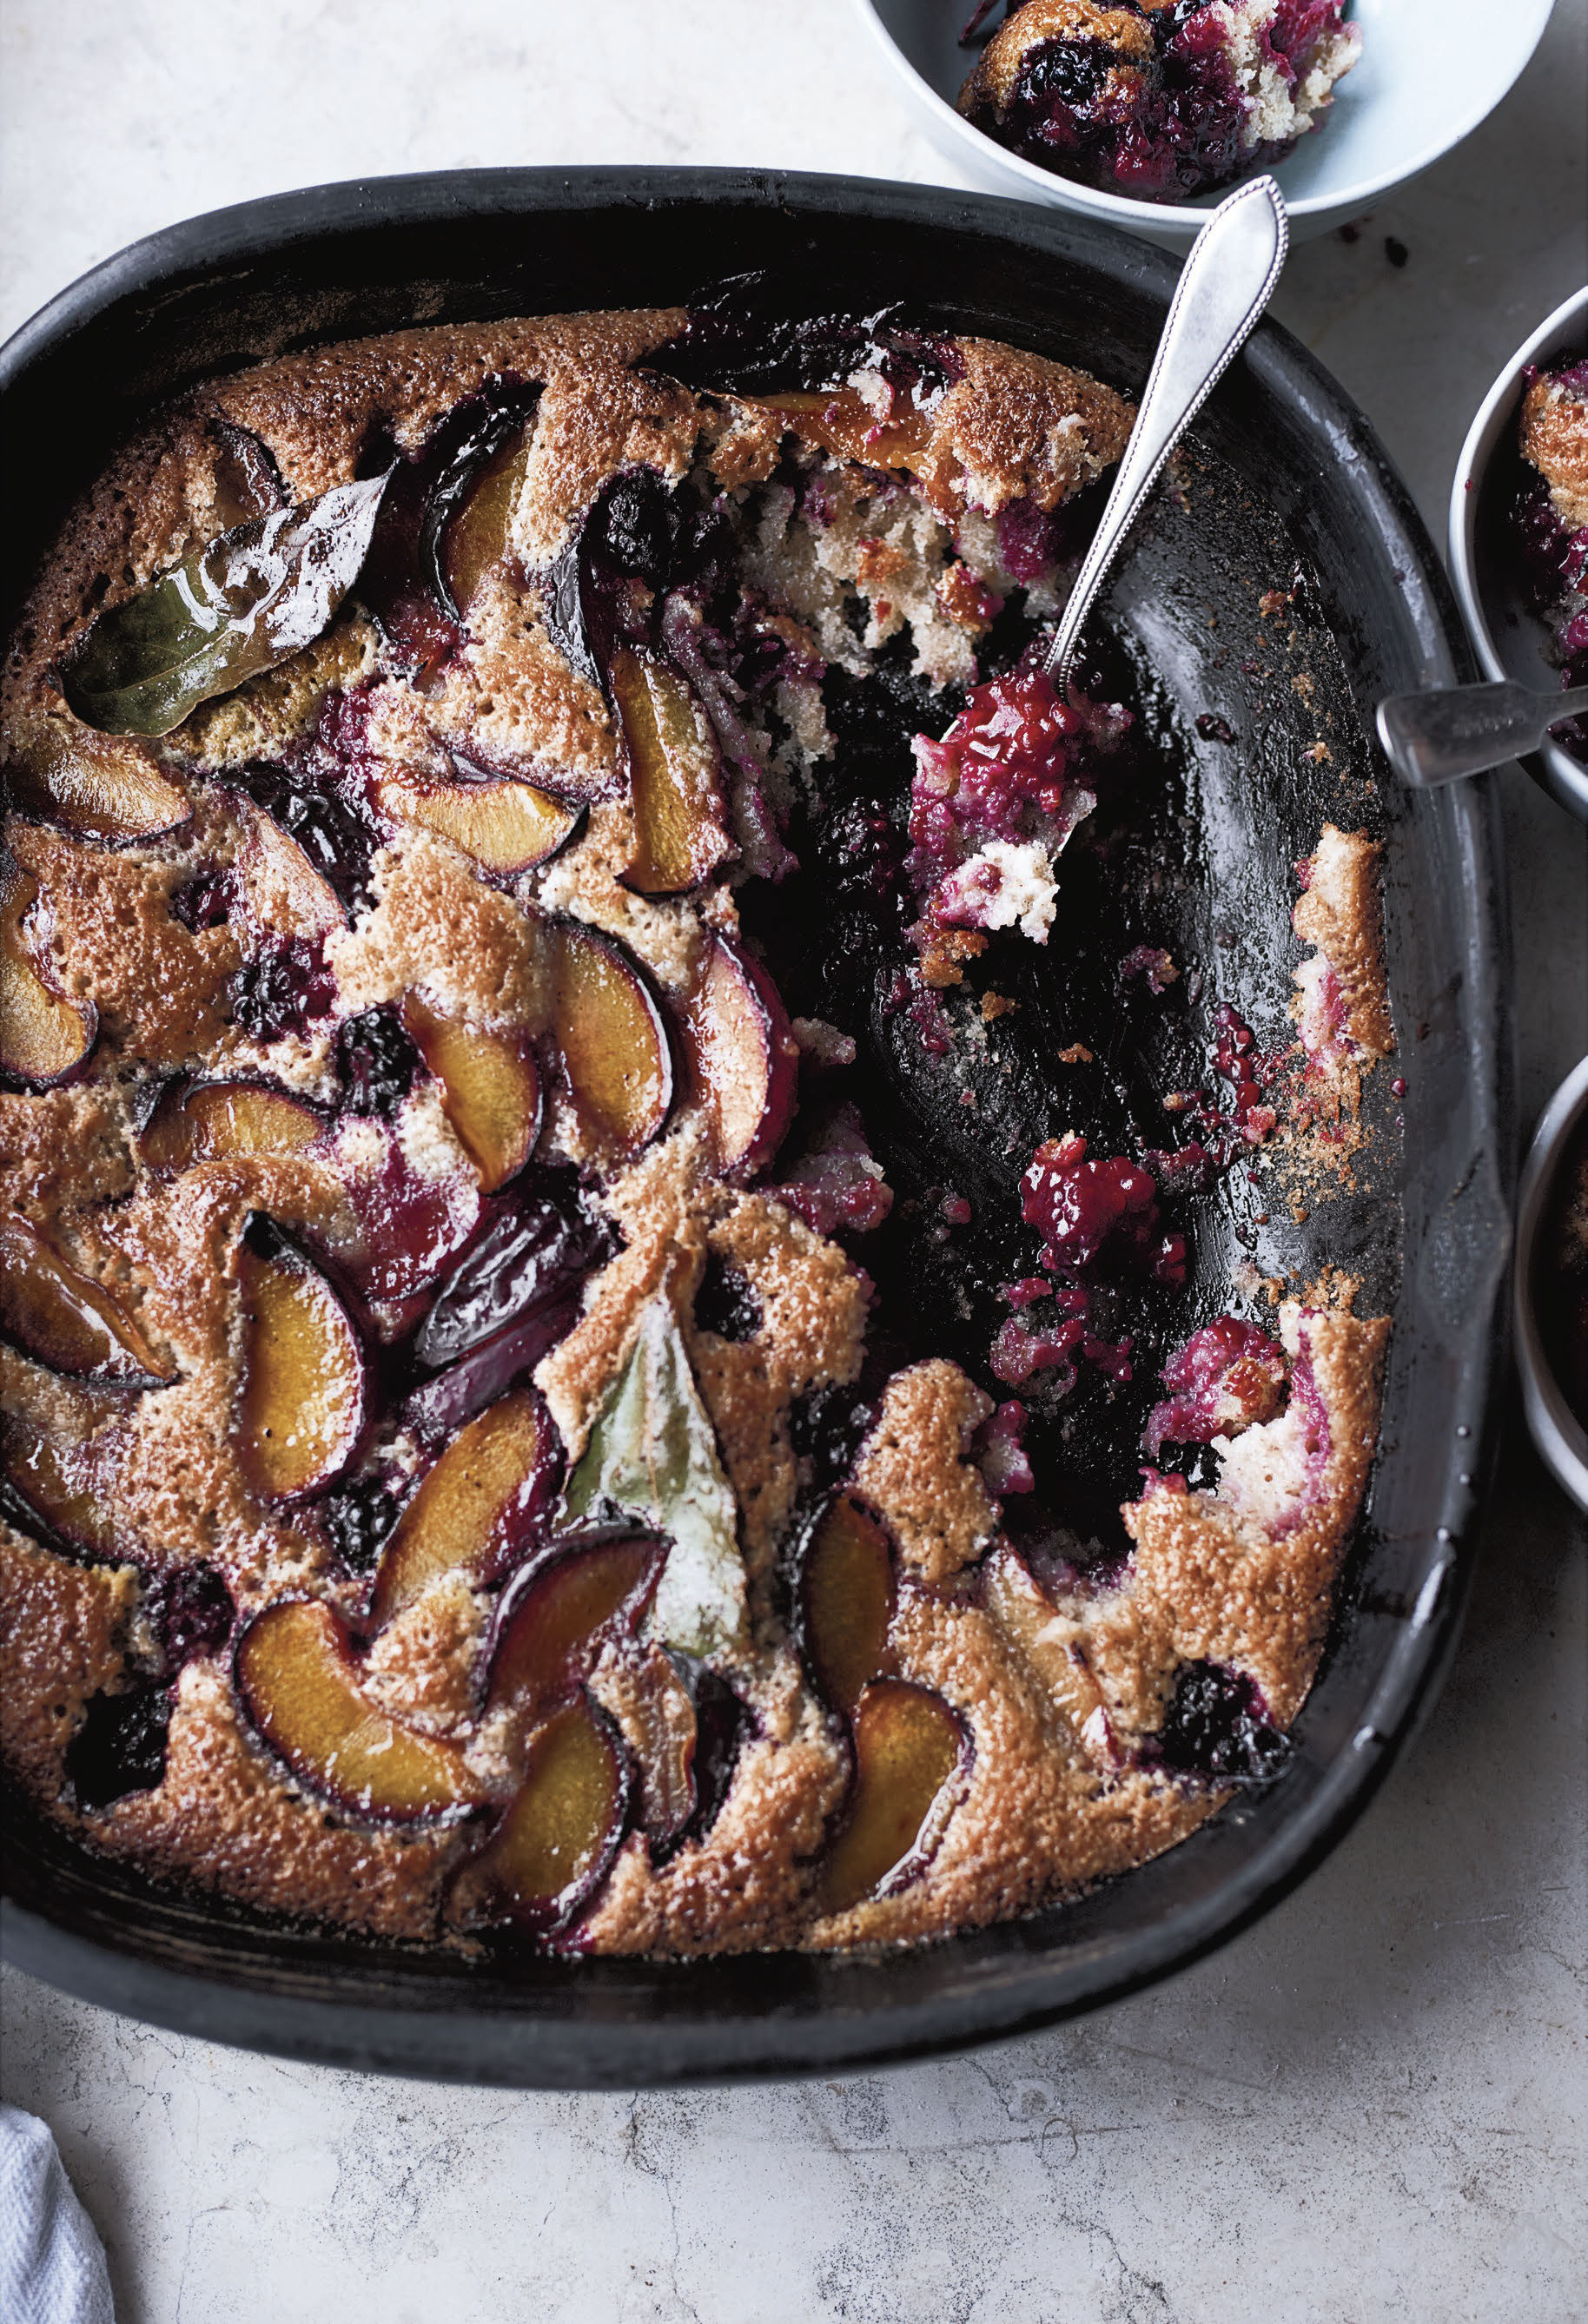 OTTOLENGHI SIMPLE_Plum, Blackberry, and Bay Friand.jpg